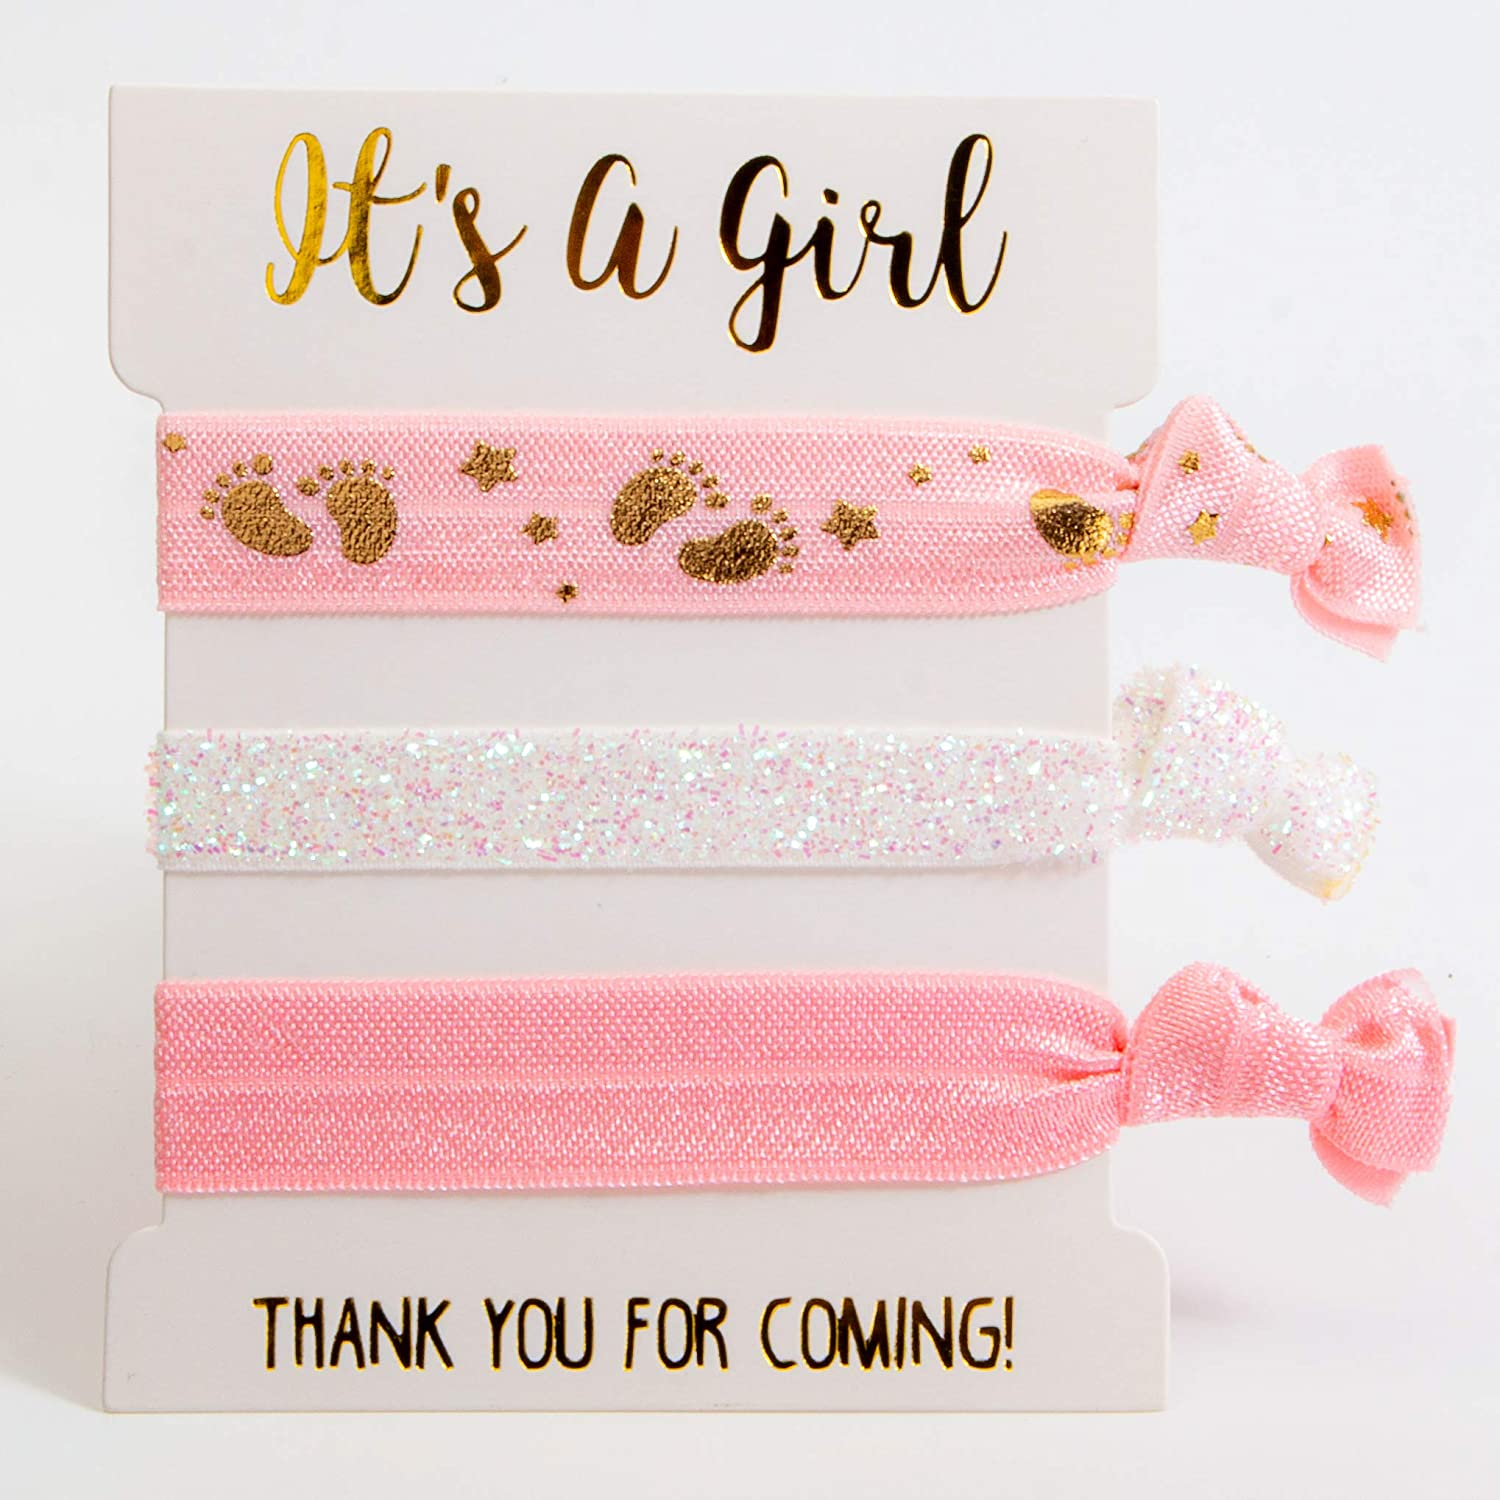 Baby Shower Favors Gifts for Guests and Giveaway for Baby Girl Baby Shower (24 Pack)